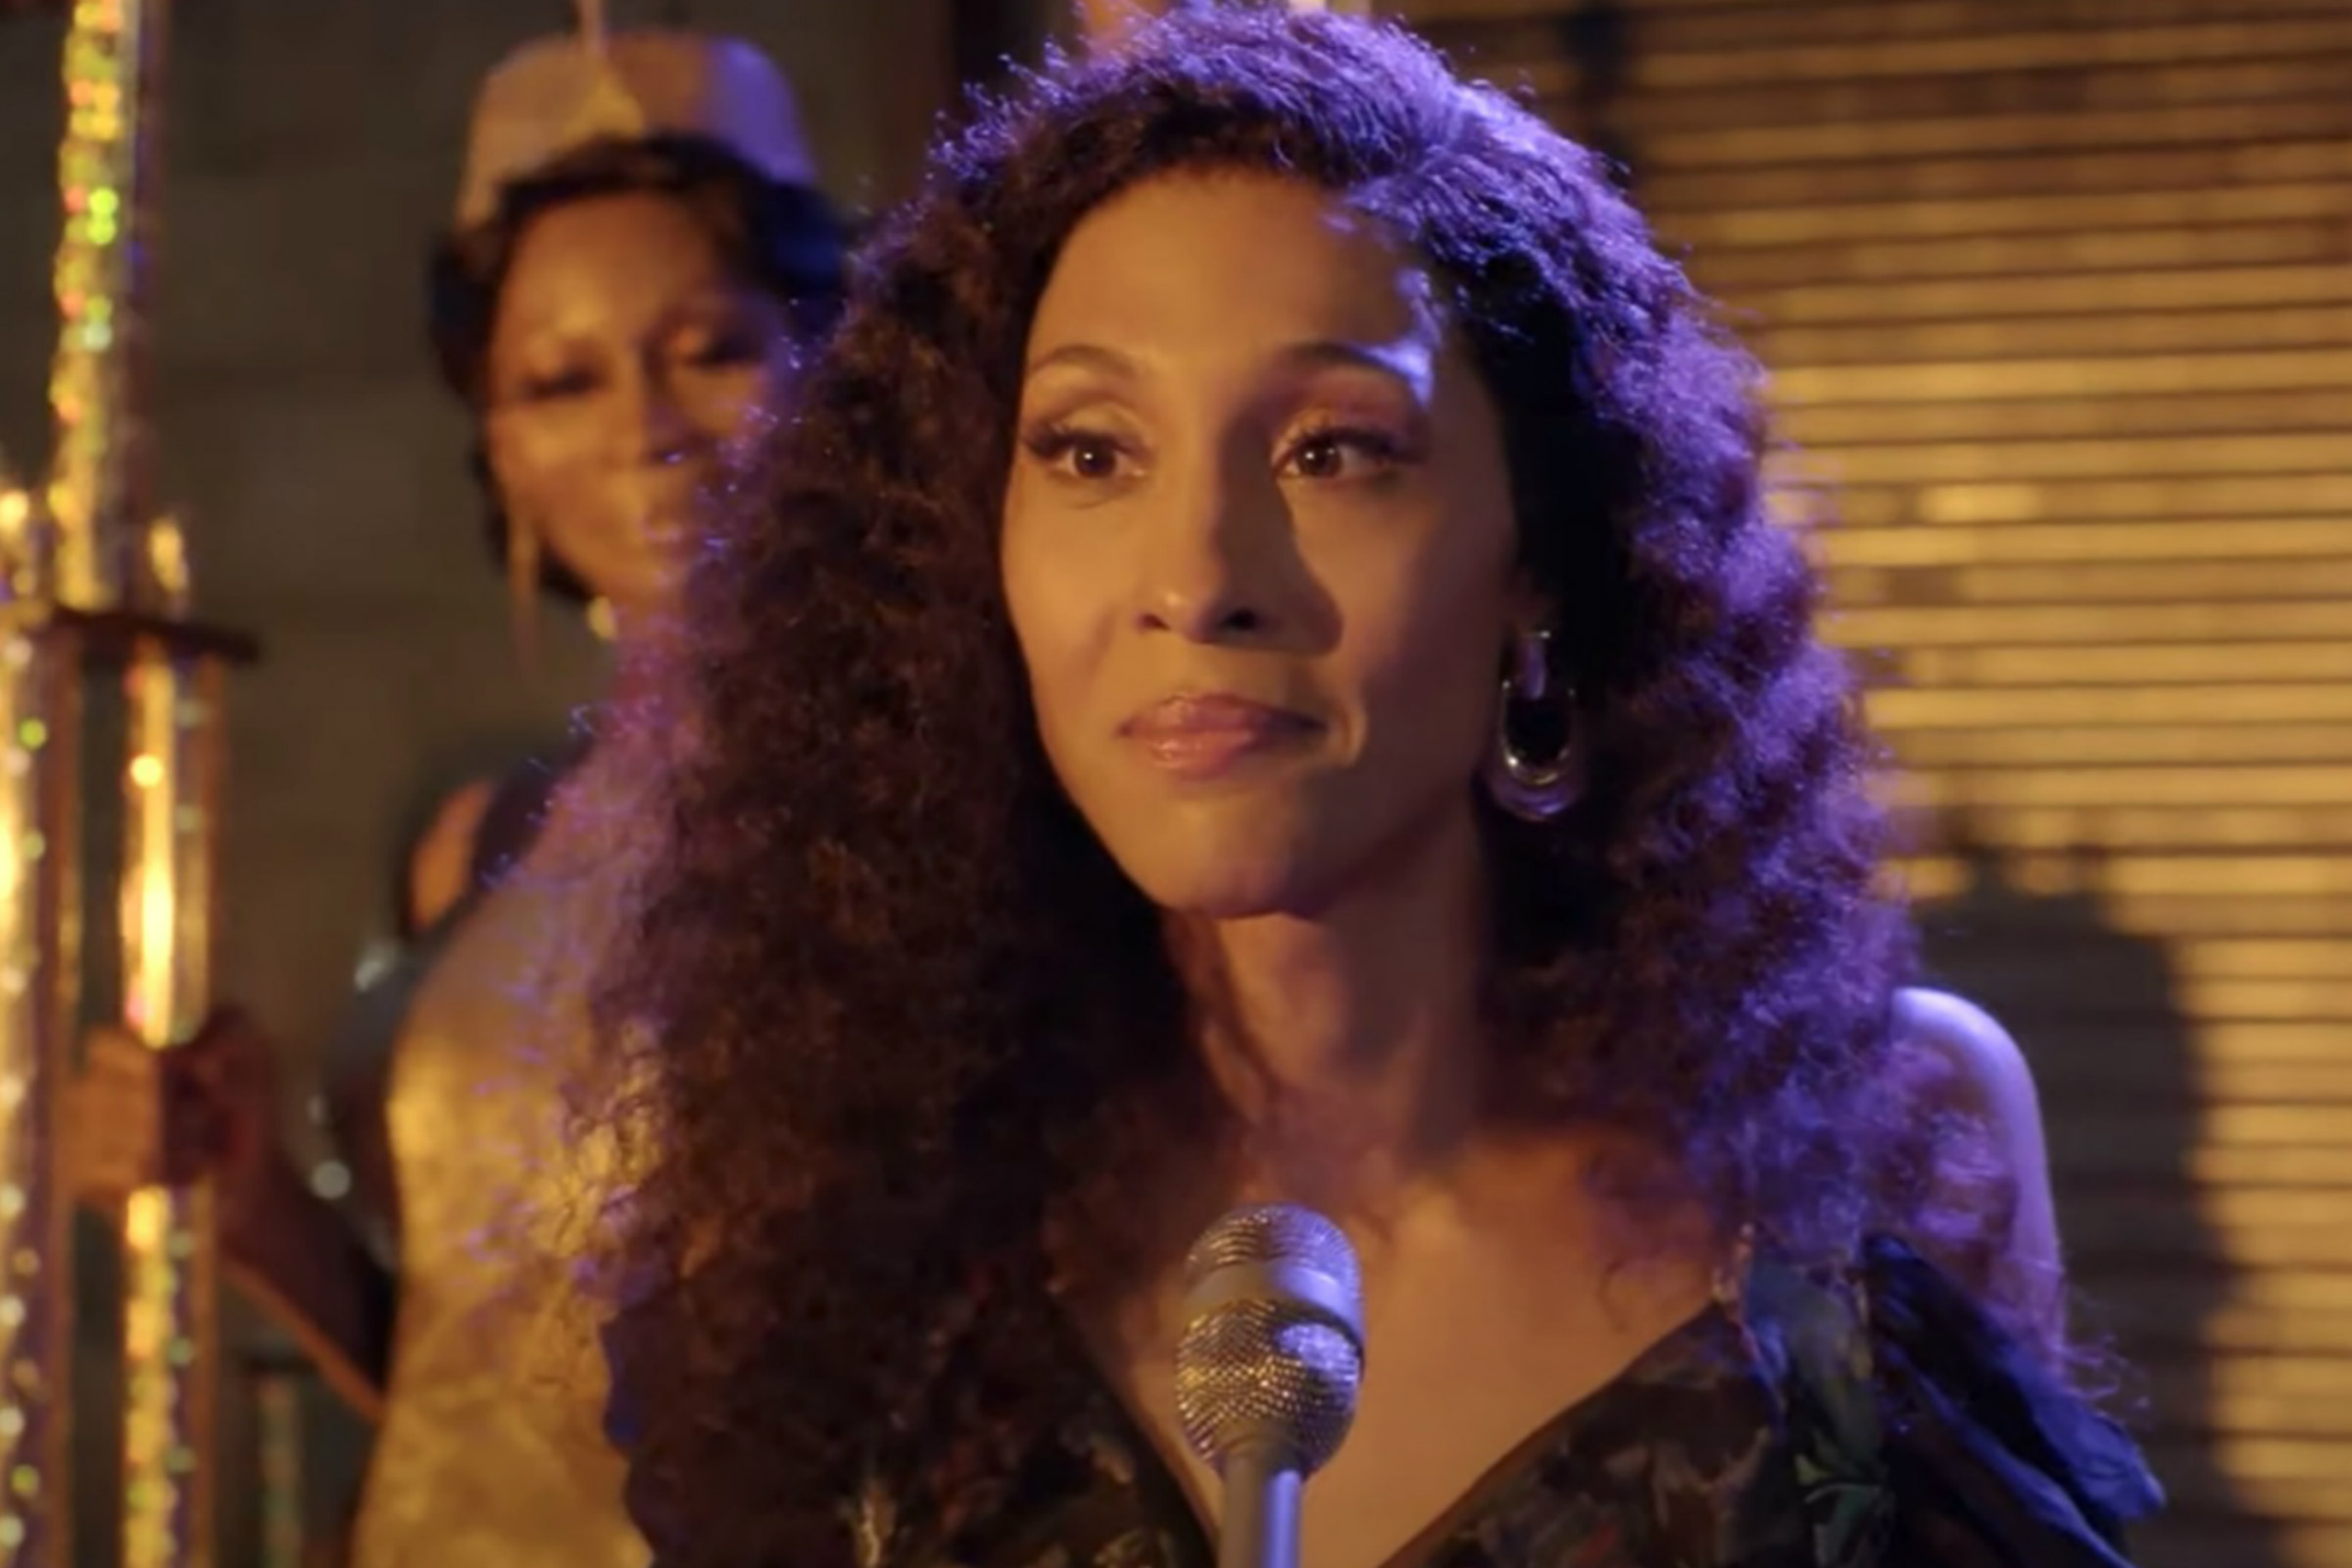 Mj Rodriguez as Blanca, a Black trans woman with long black hair speaks into a microphone on Pose